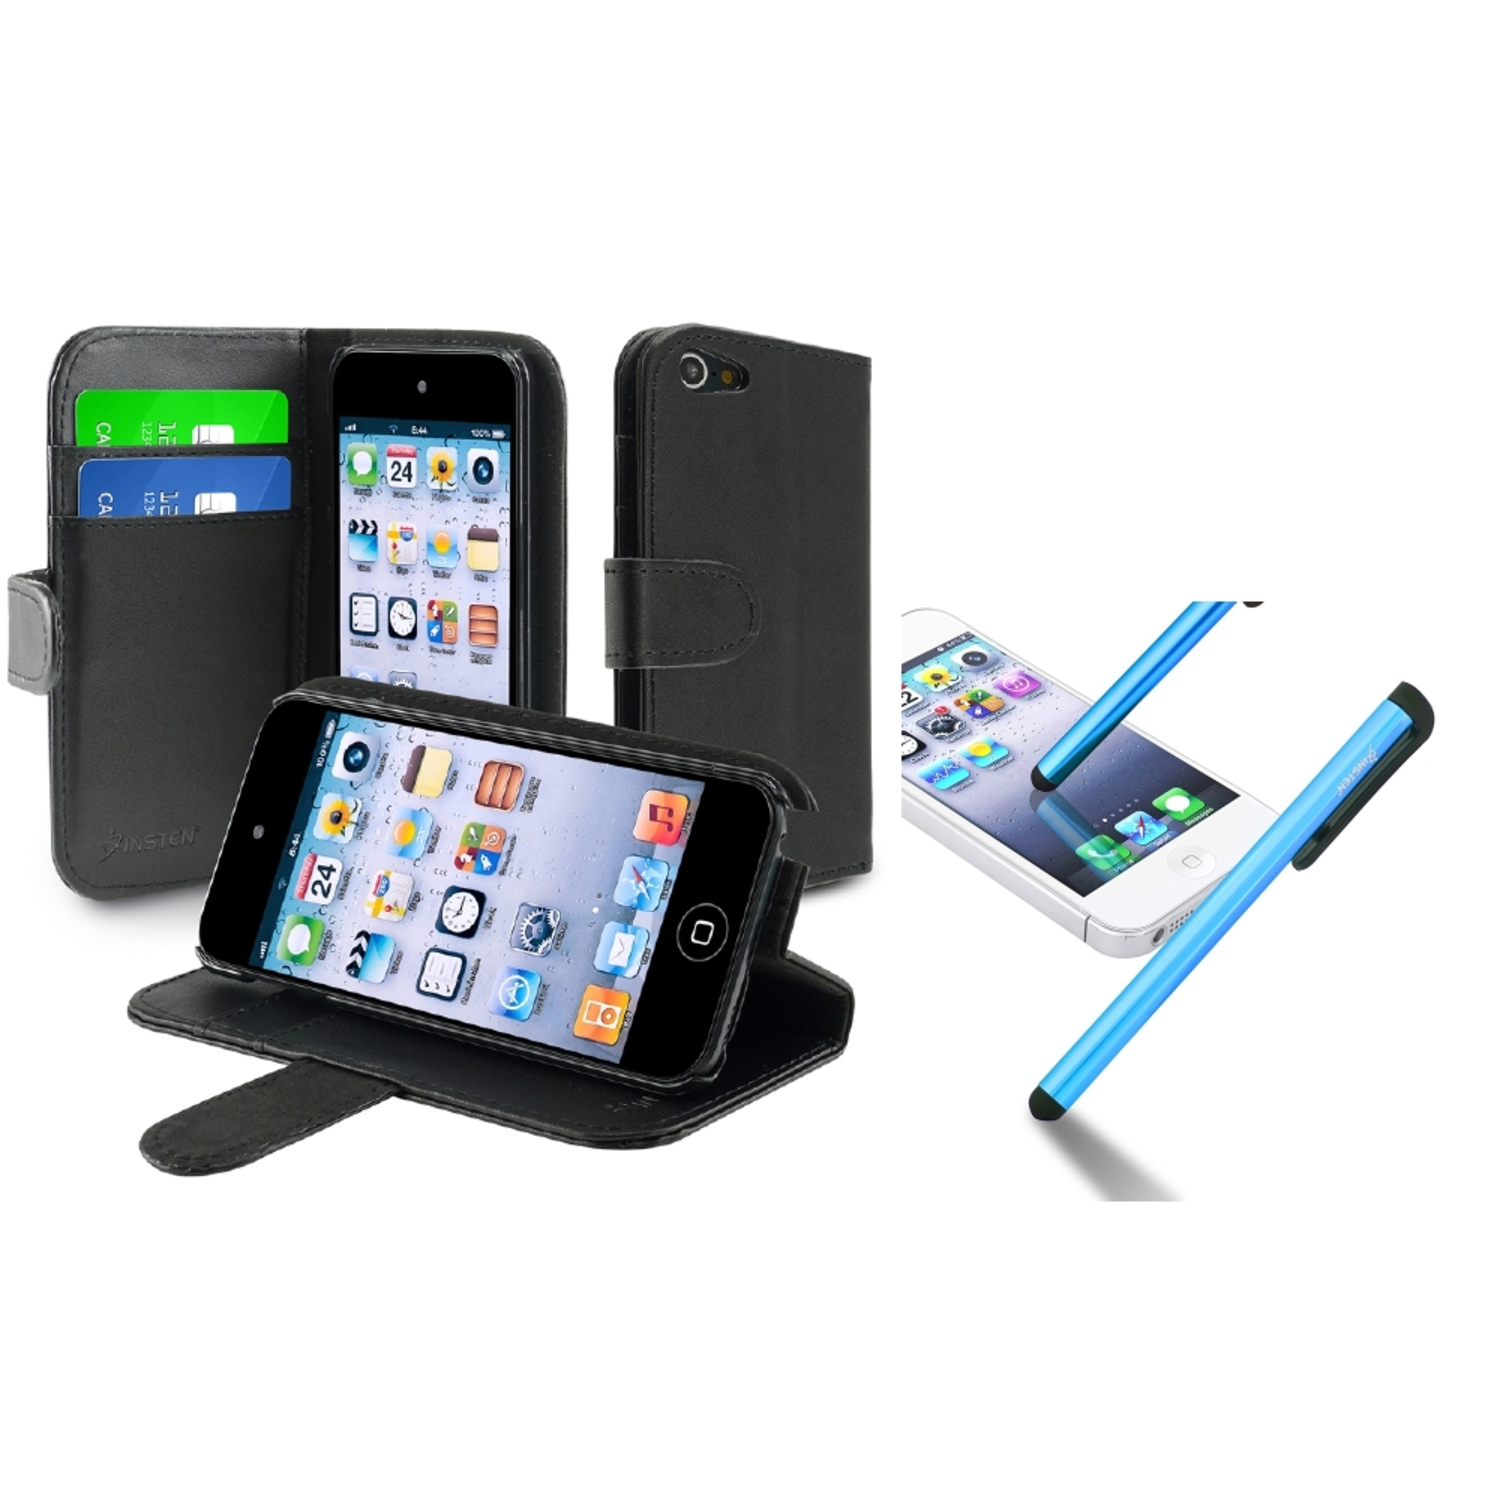 Insten For Apple iPod touch 6 6G 6th 5 5G 5th Wallet Leather Case w/ Card Holder, Black+Blue Pen